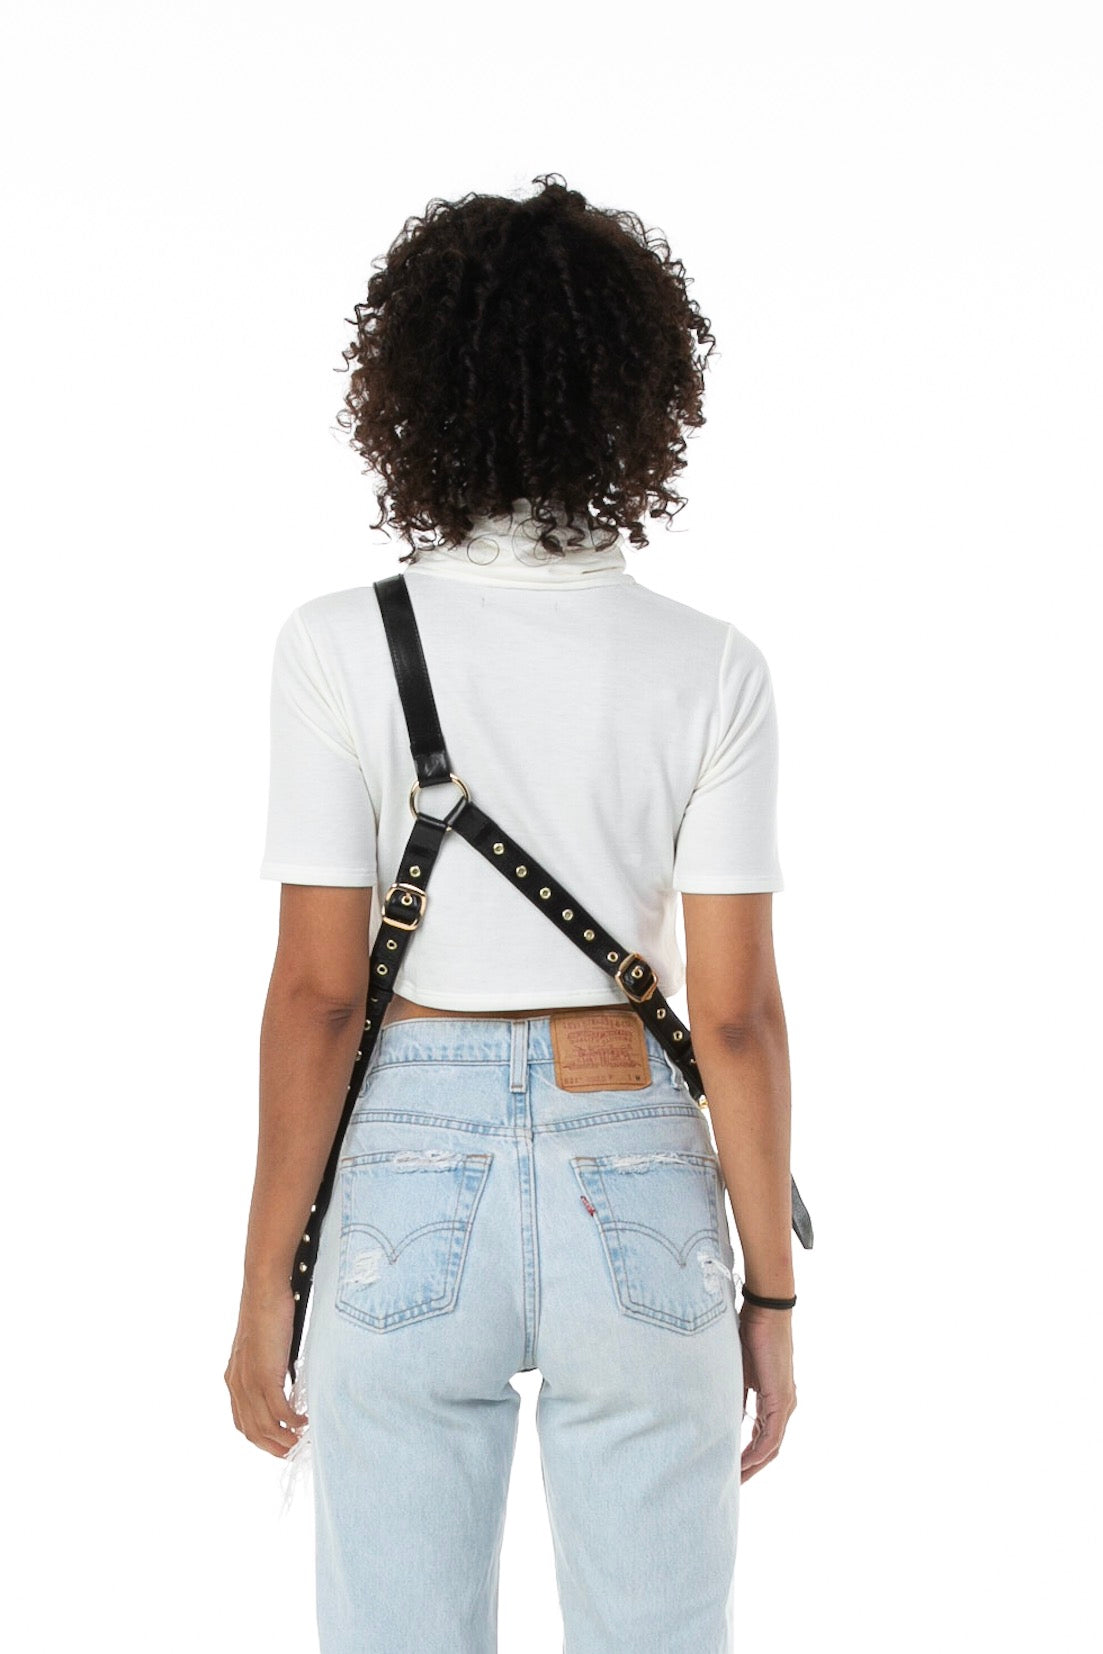 Backside of female model wearing Holster Bag in Black